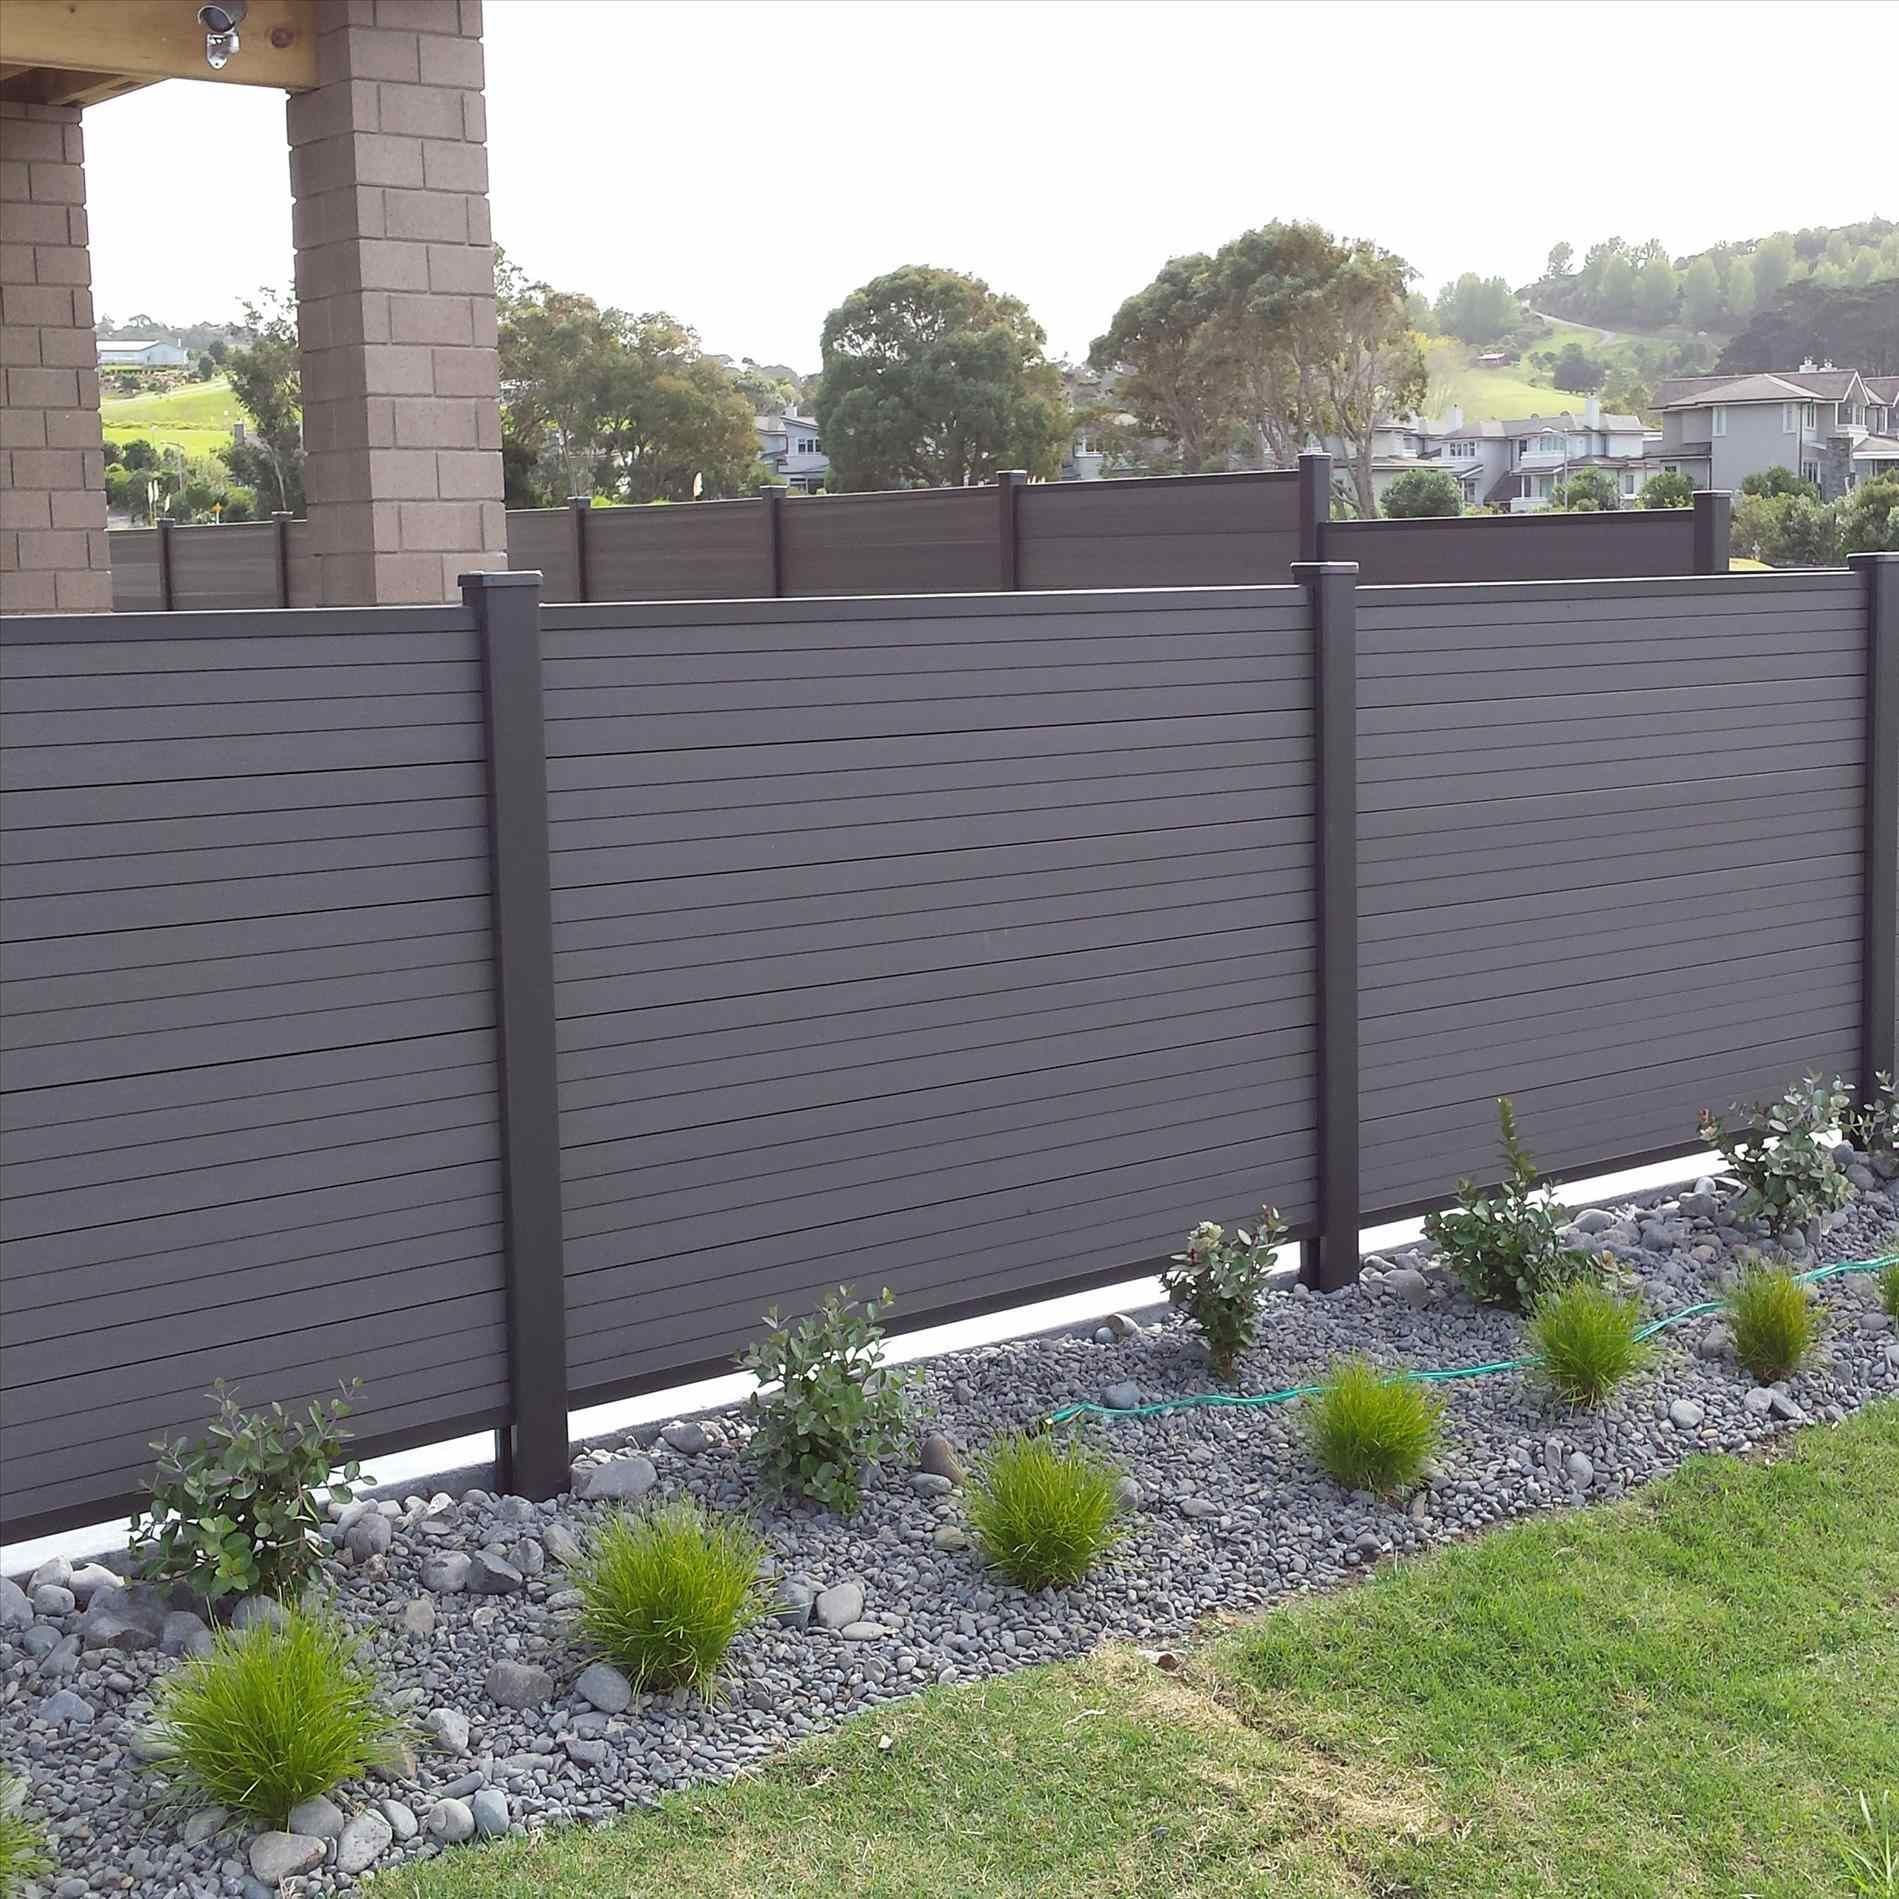 Vinyl Fencing Slats Backyard Landscaping Fence Intended For Proportions 1900 X 1425 Horizontal Slat Vinyl Fence Backyard Fences Fence Design Vinyl Fence Panels